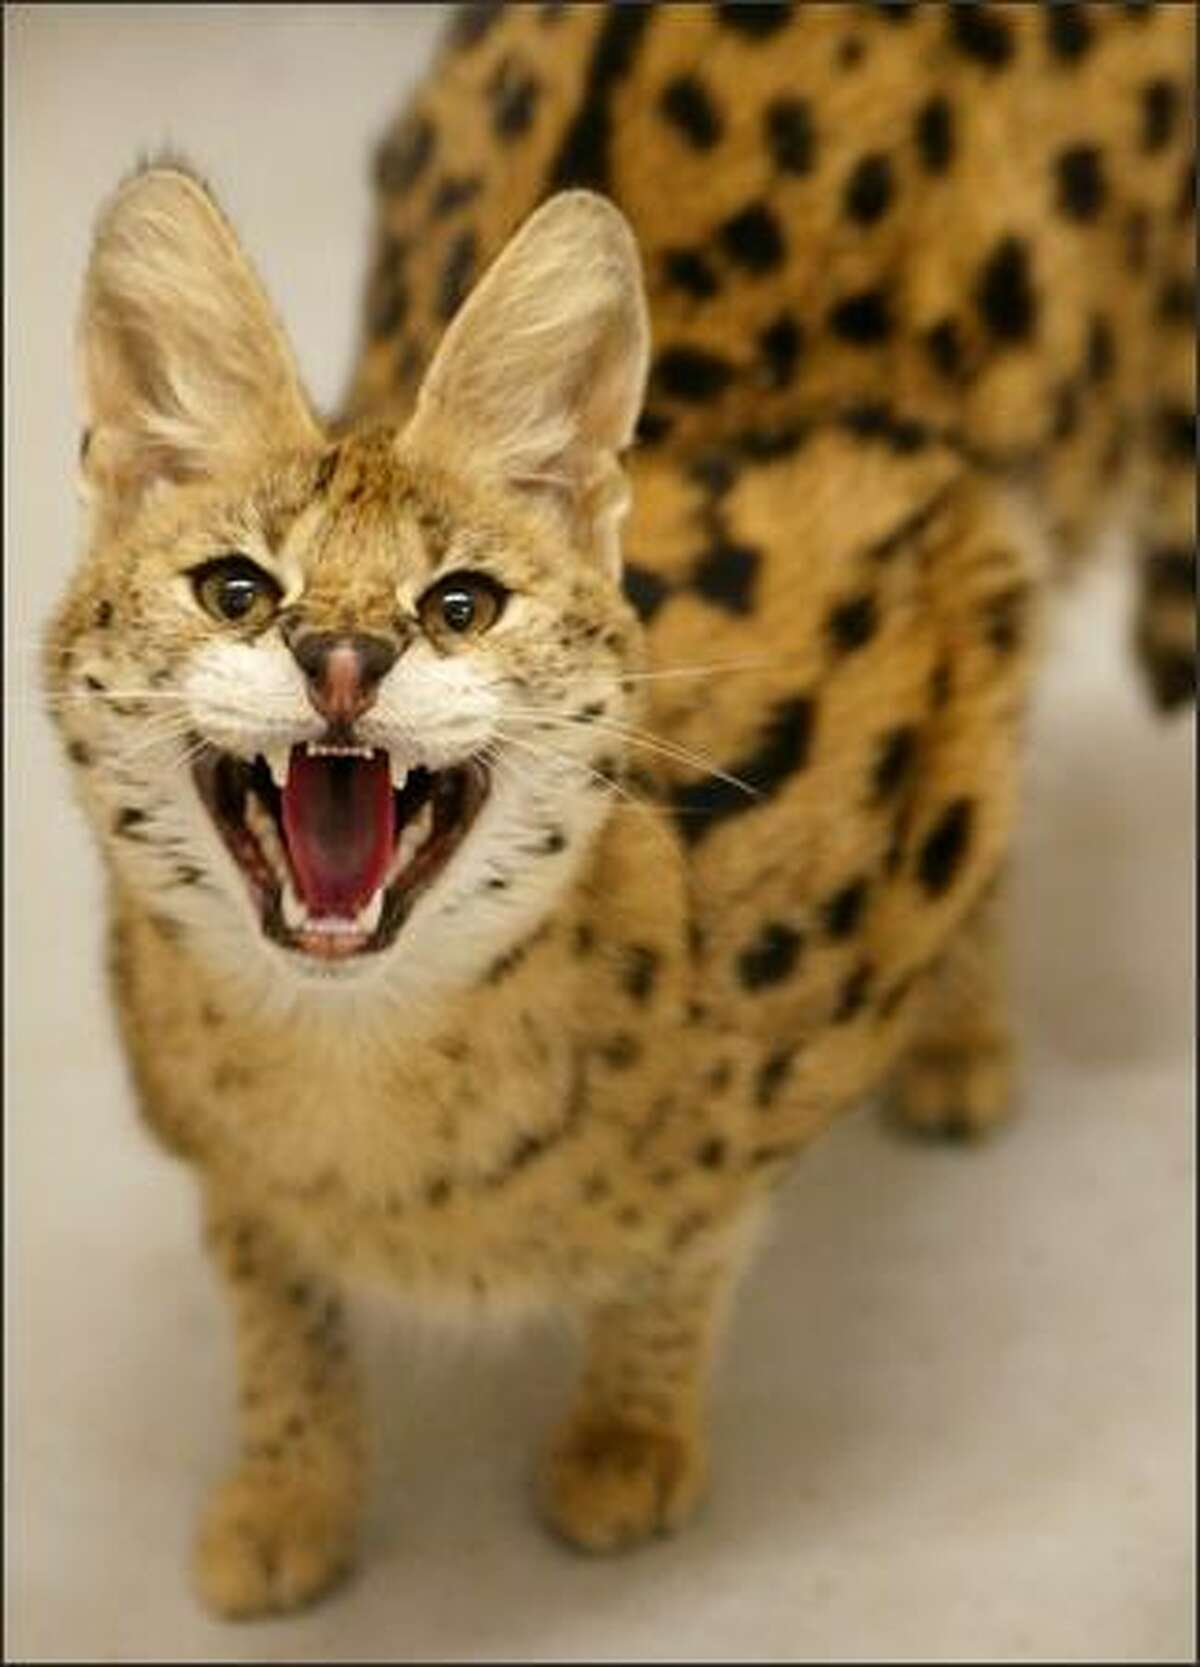 This wild serval cat, a different animal from the one in the story, was photographed in 2003 after being captured within the Seattle city limits.